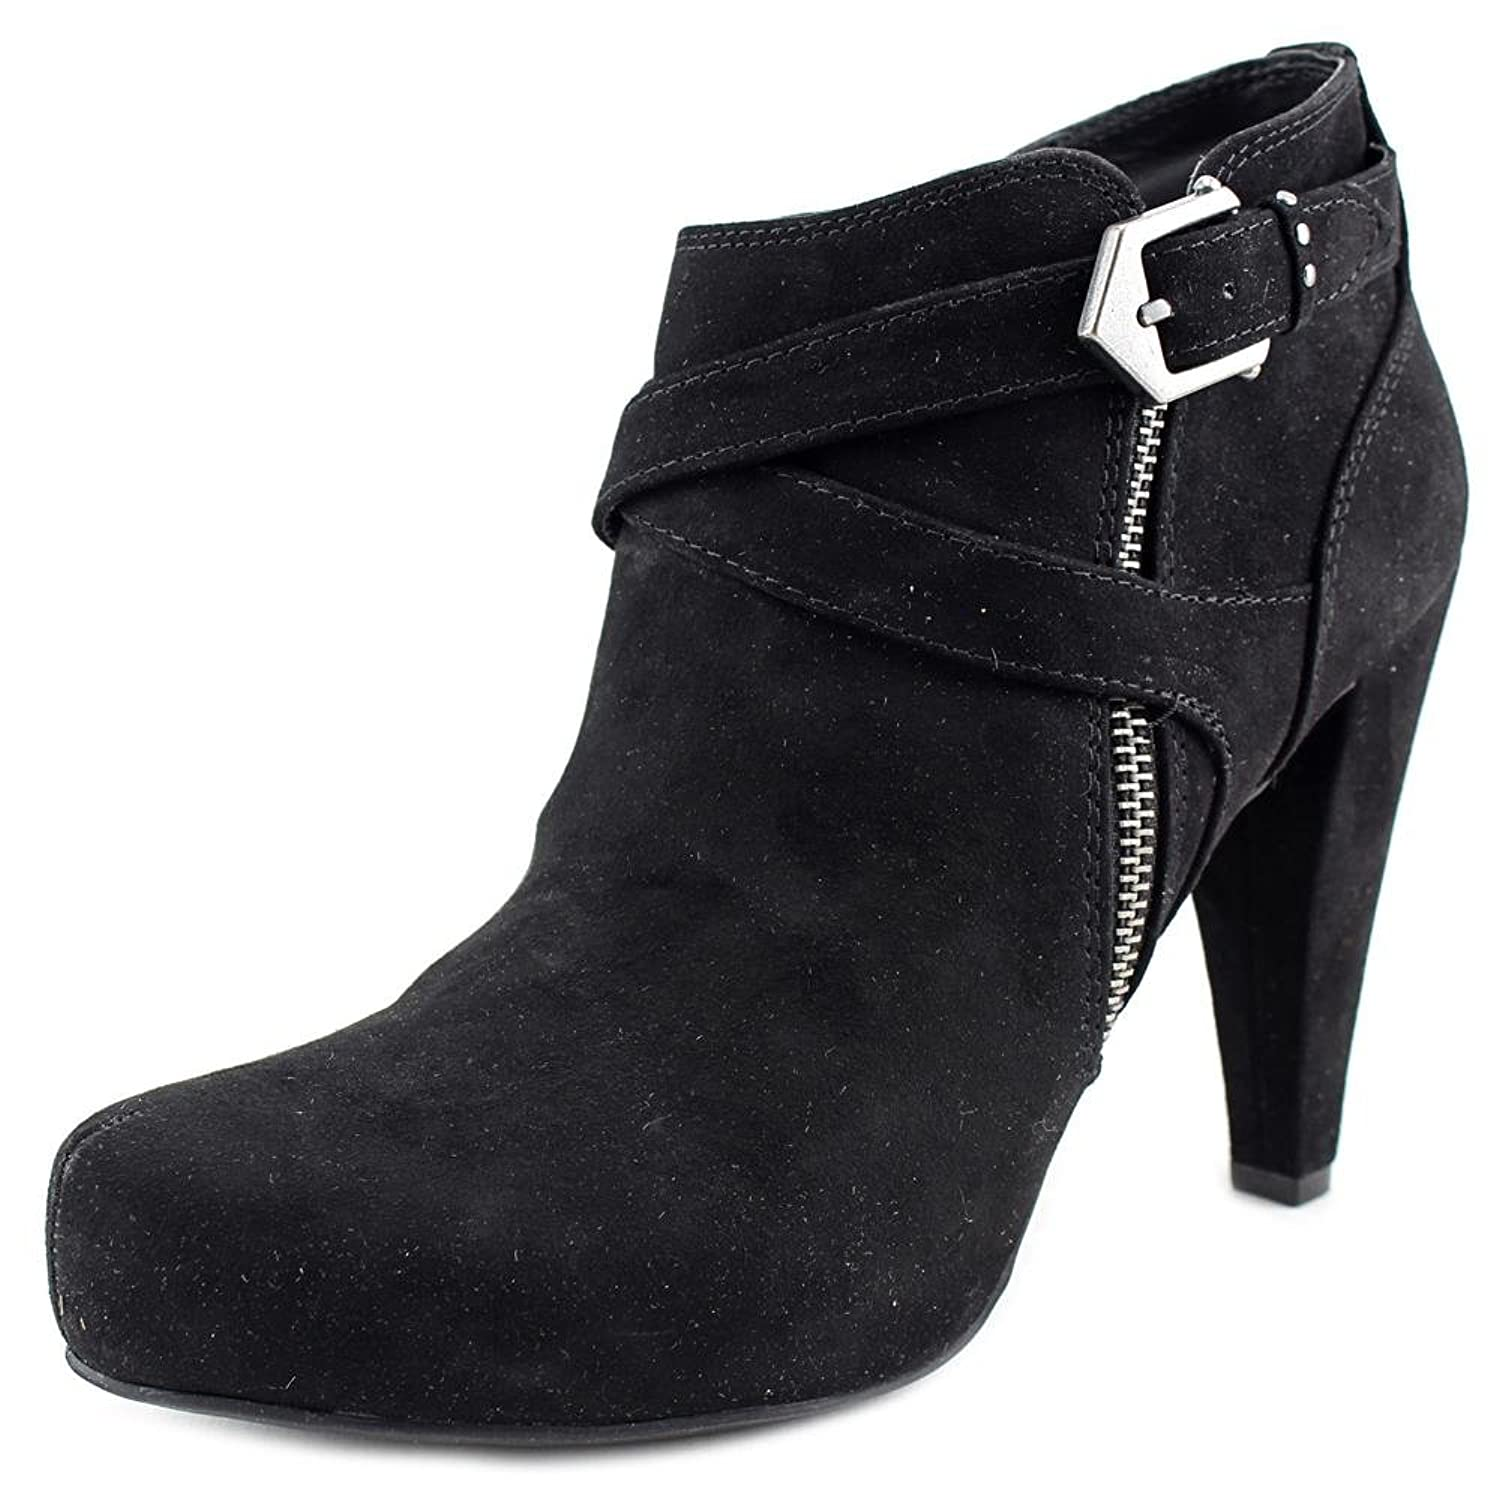 G by Guess Womens Taylin Closed Toe Ankle Fashion Boots Black Fabric Size 8.5